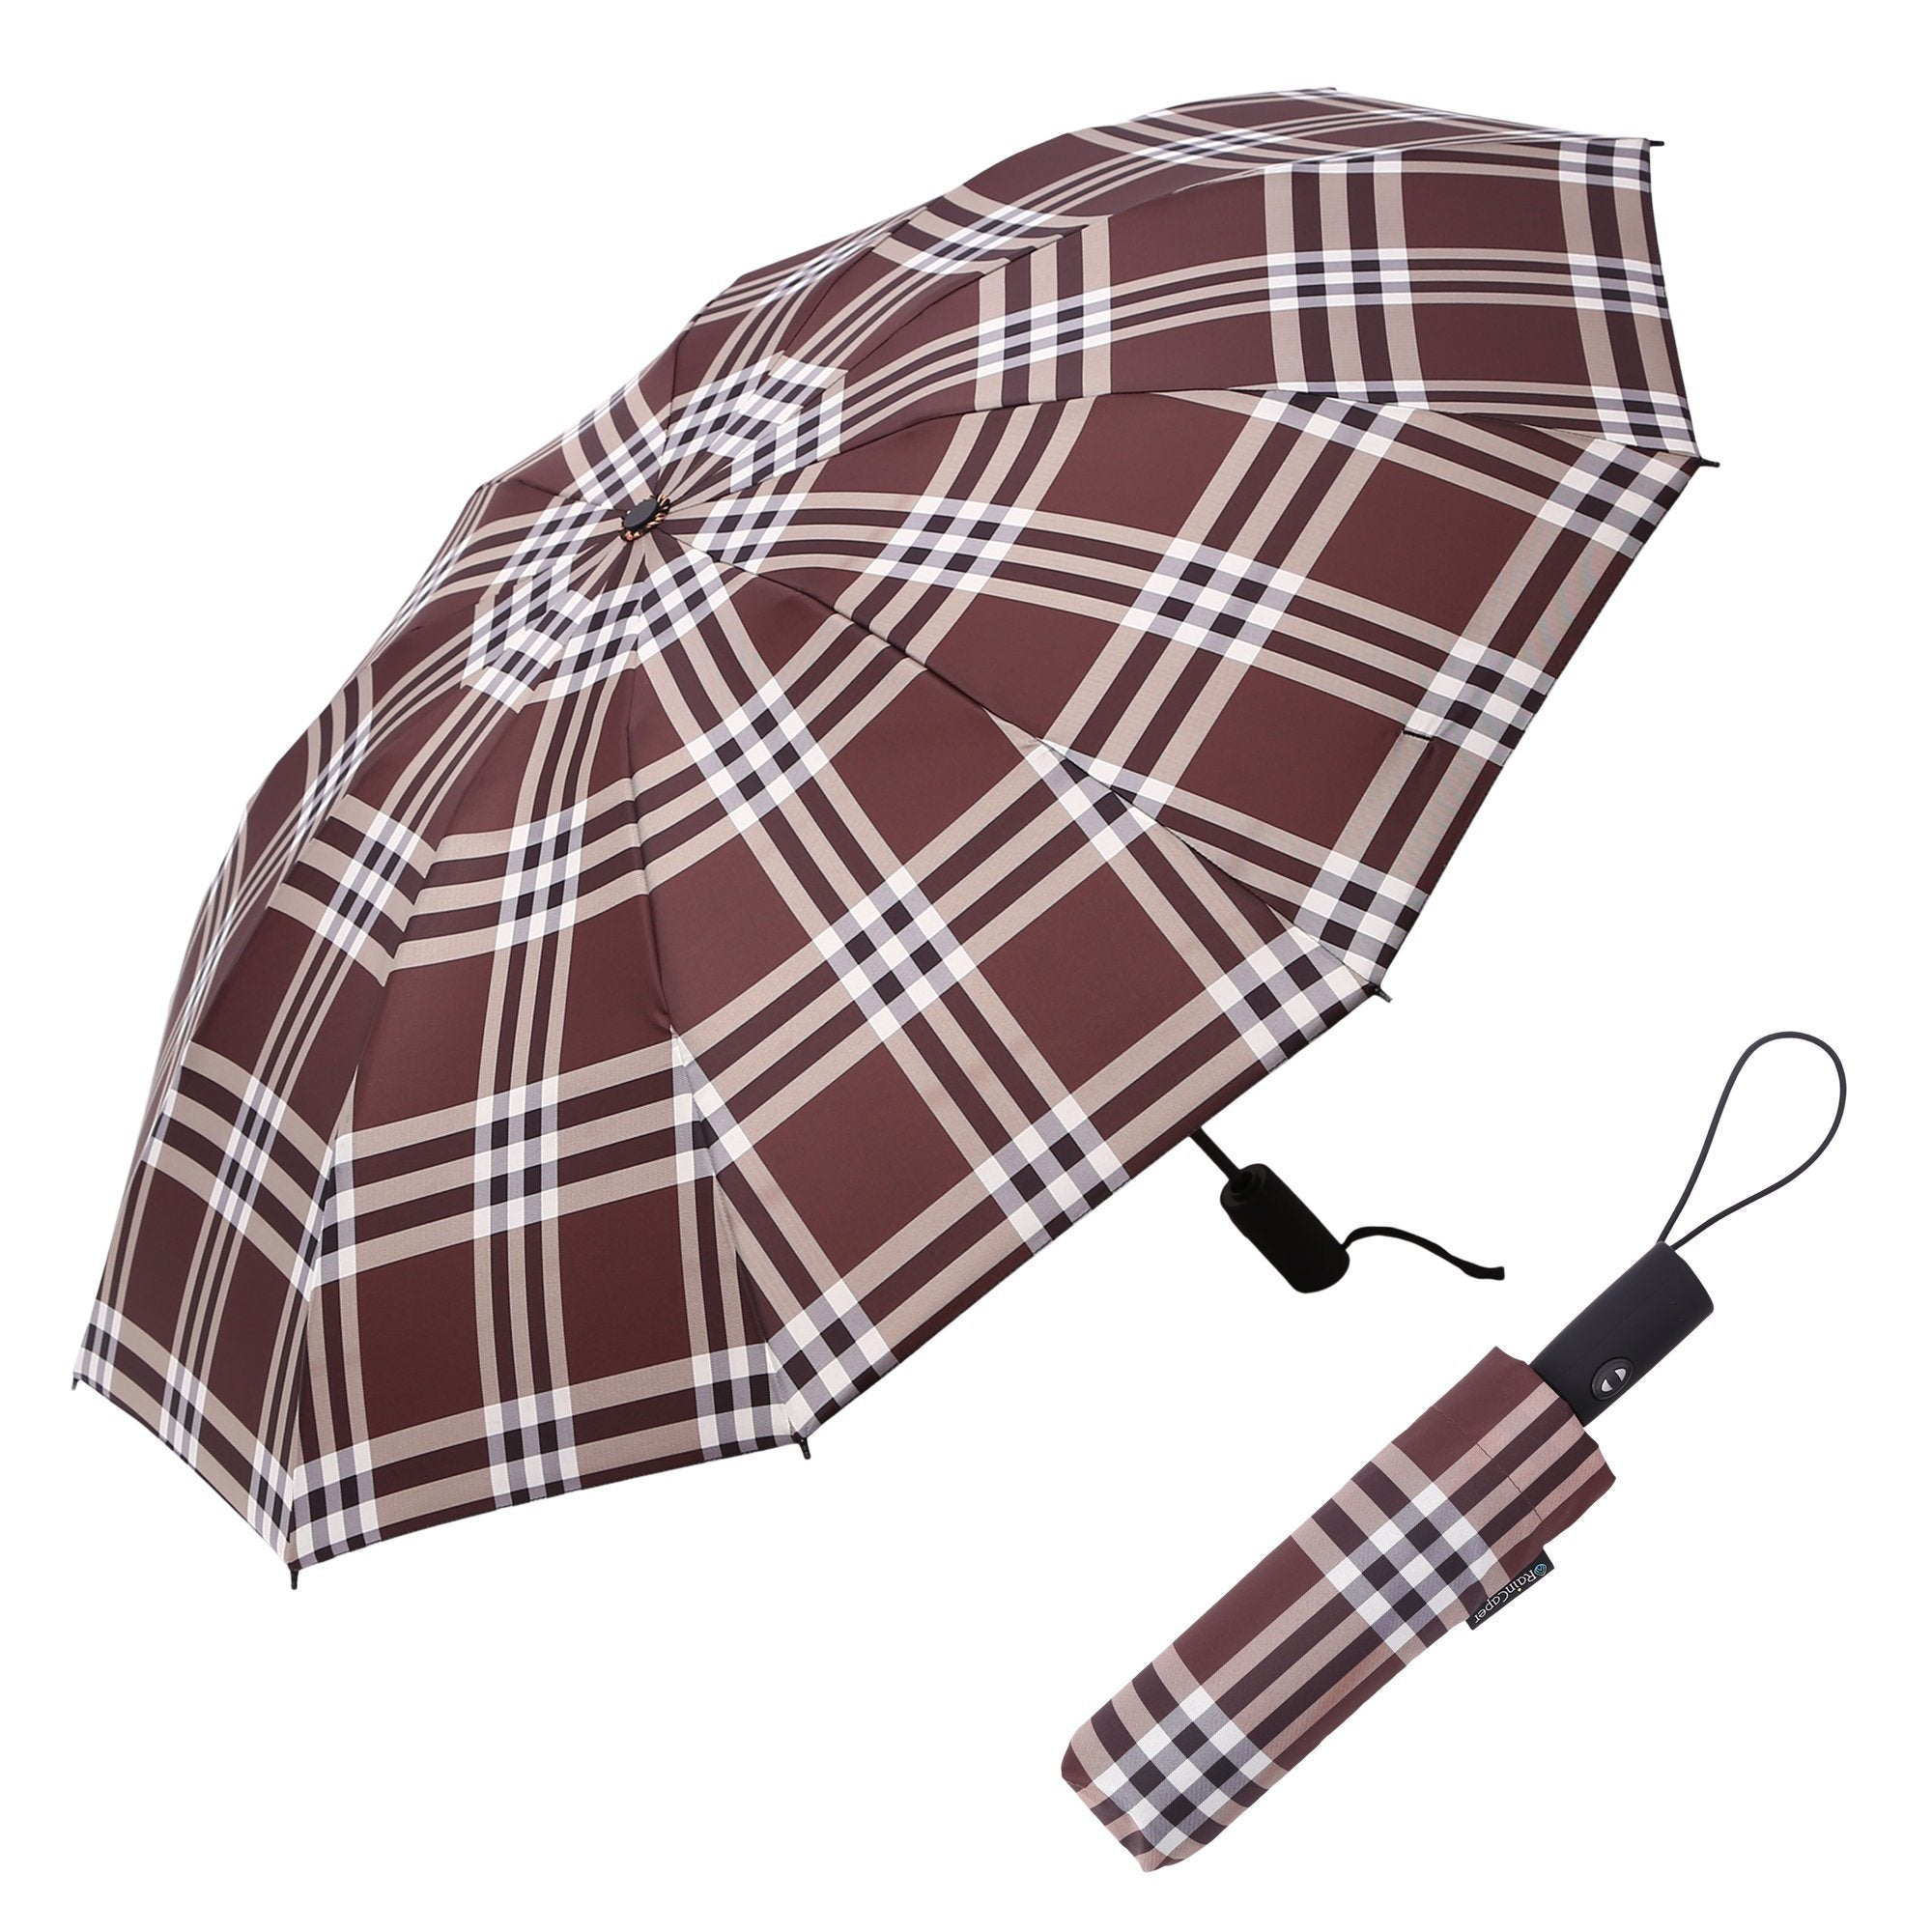 Image of a RainCaper Coco Plaid folded traveling umbrella shown both open and closed